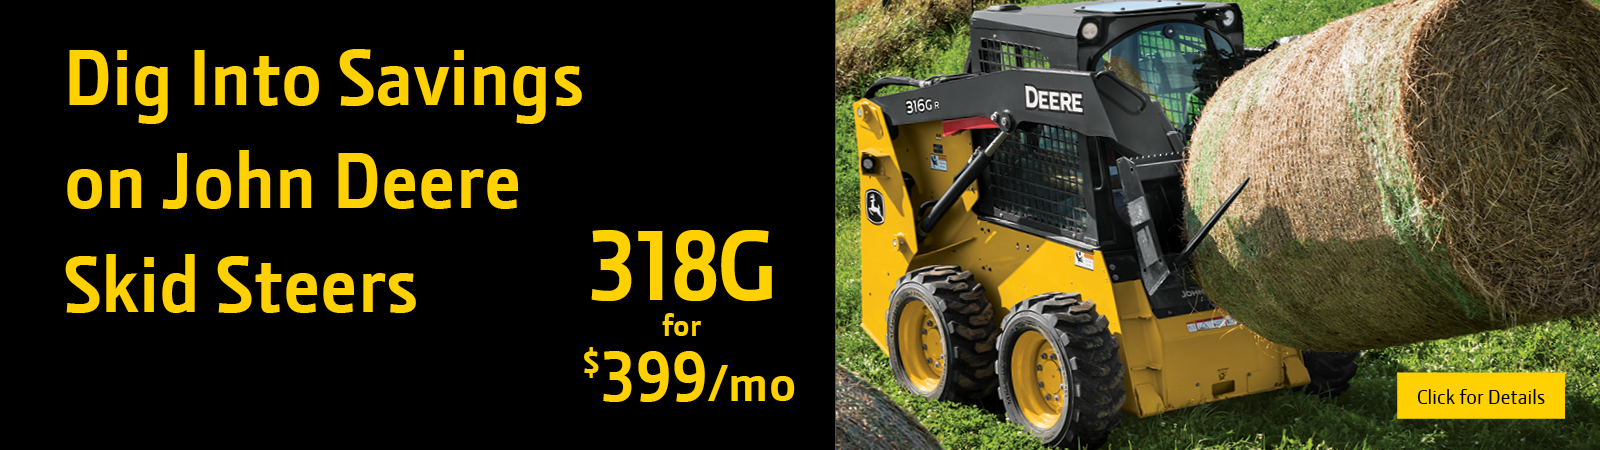 Koenig Equipment | Tractors, Lawnmowers and more by top